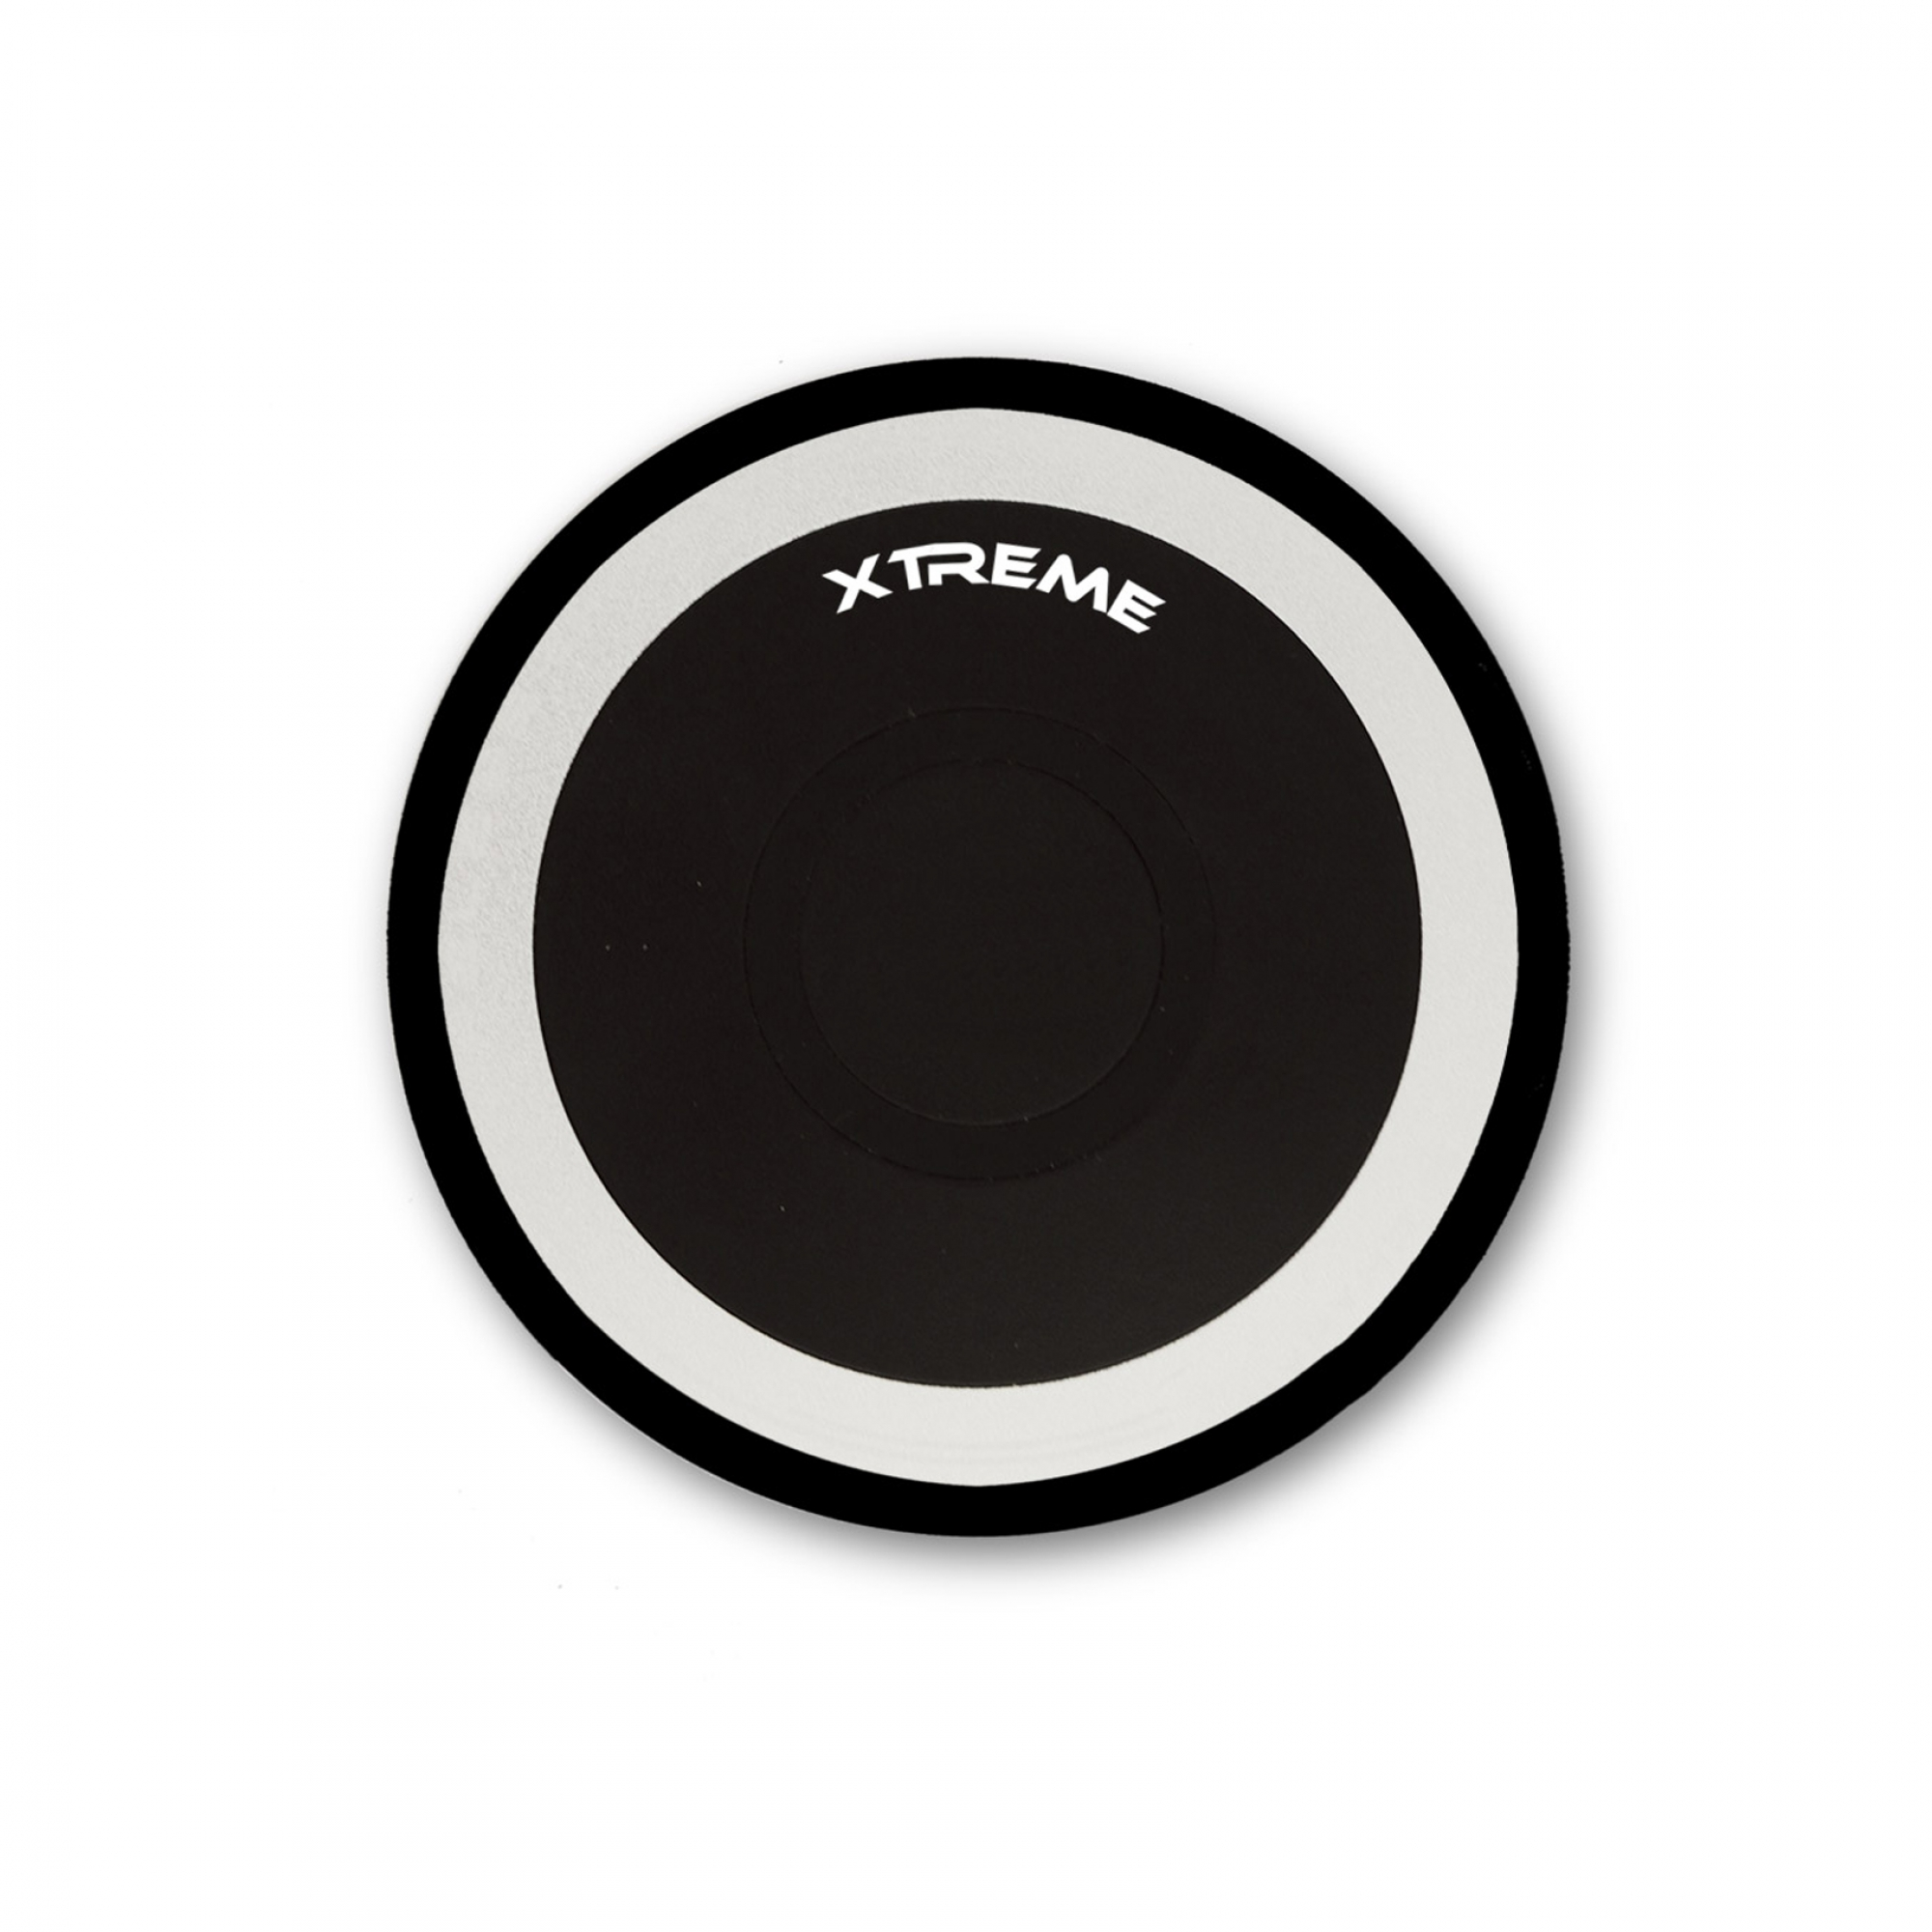 Xtreme Touch N' Charge Qi Wireless Charger